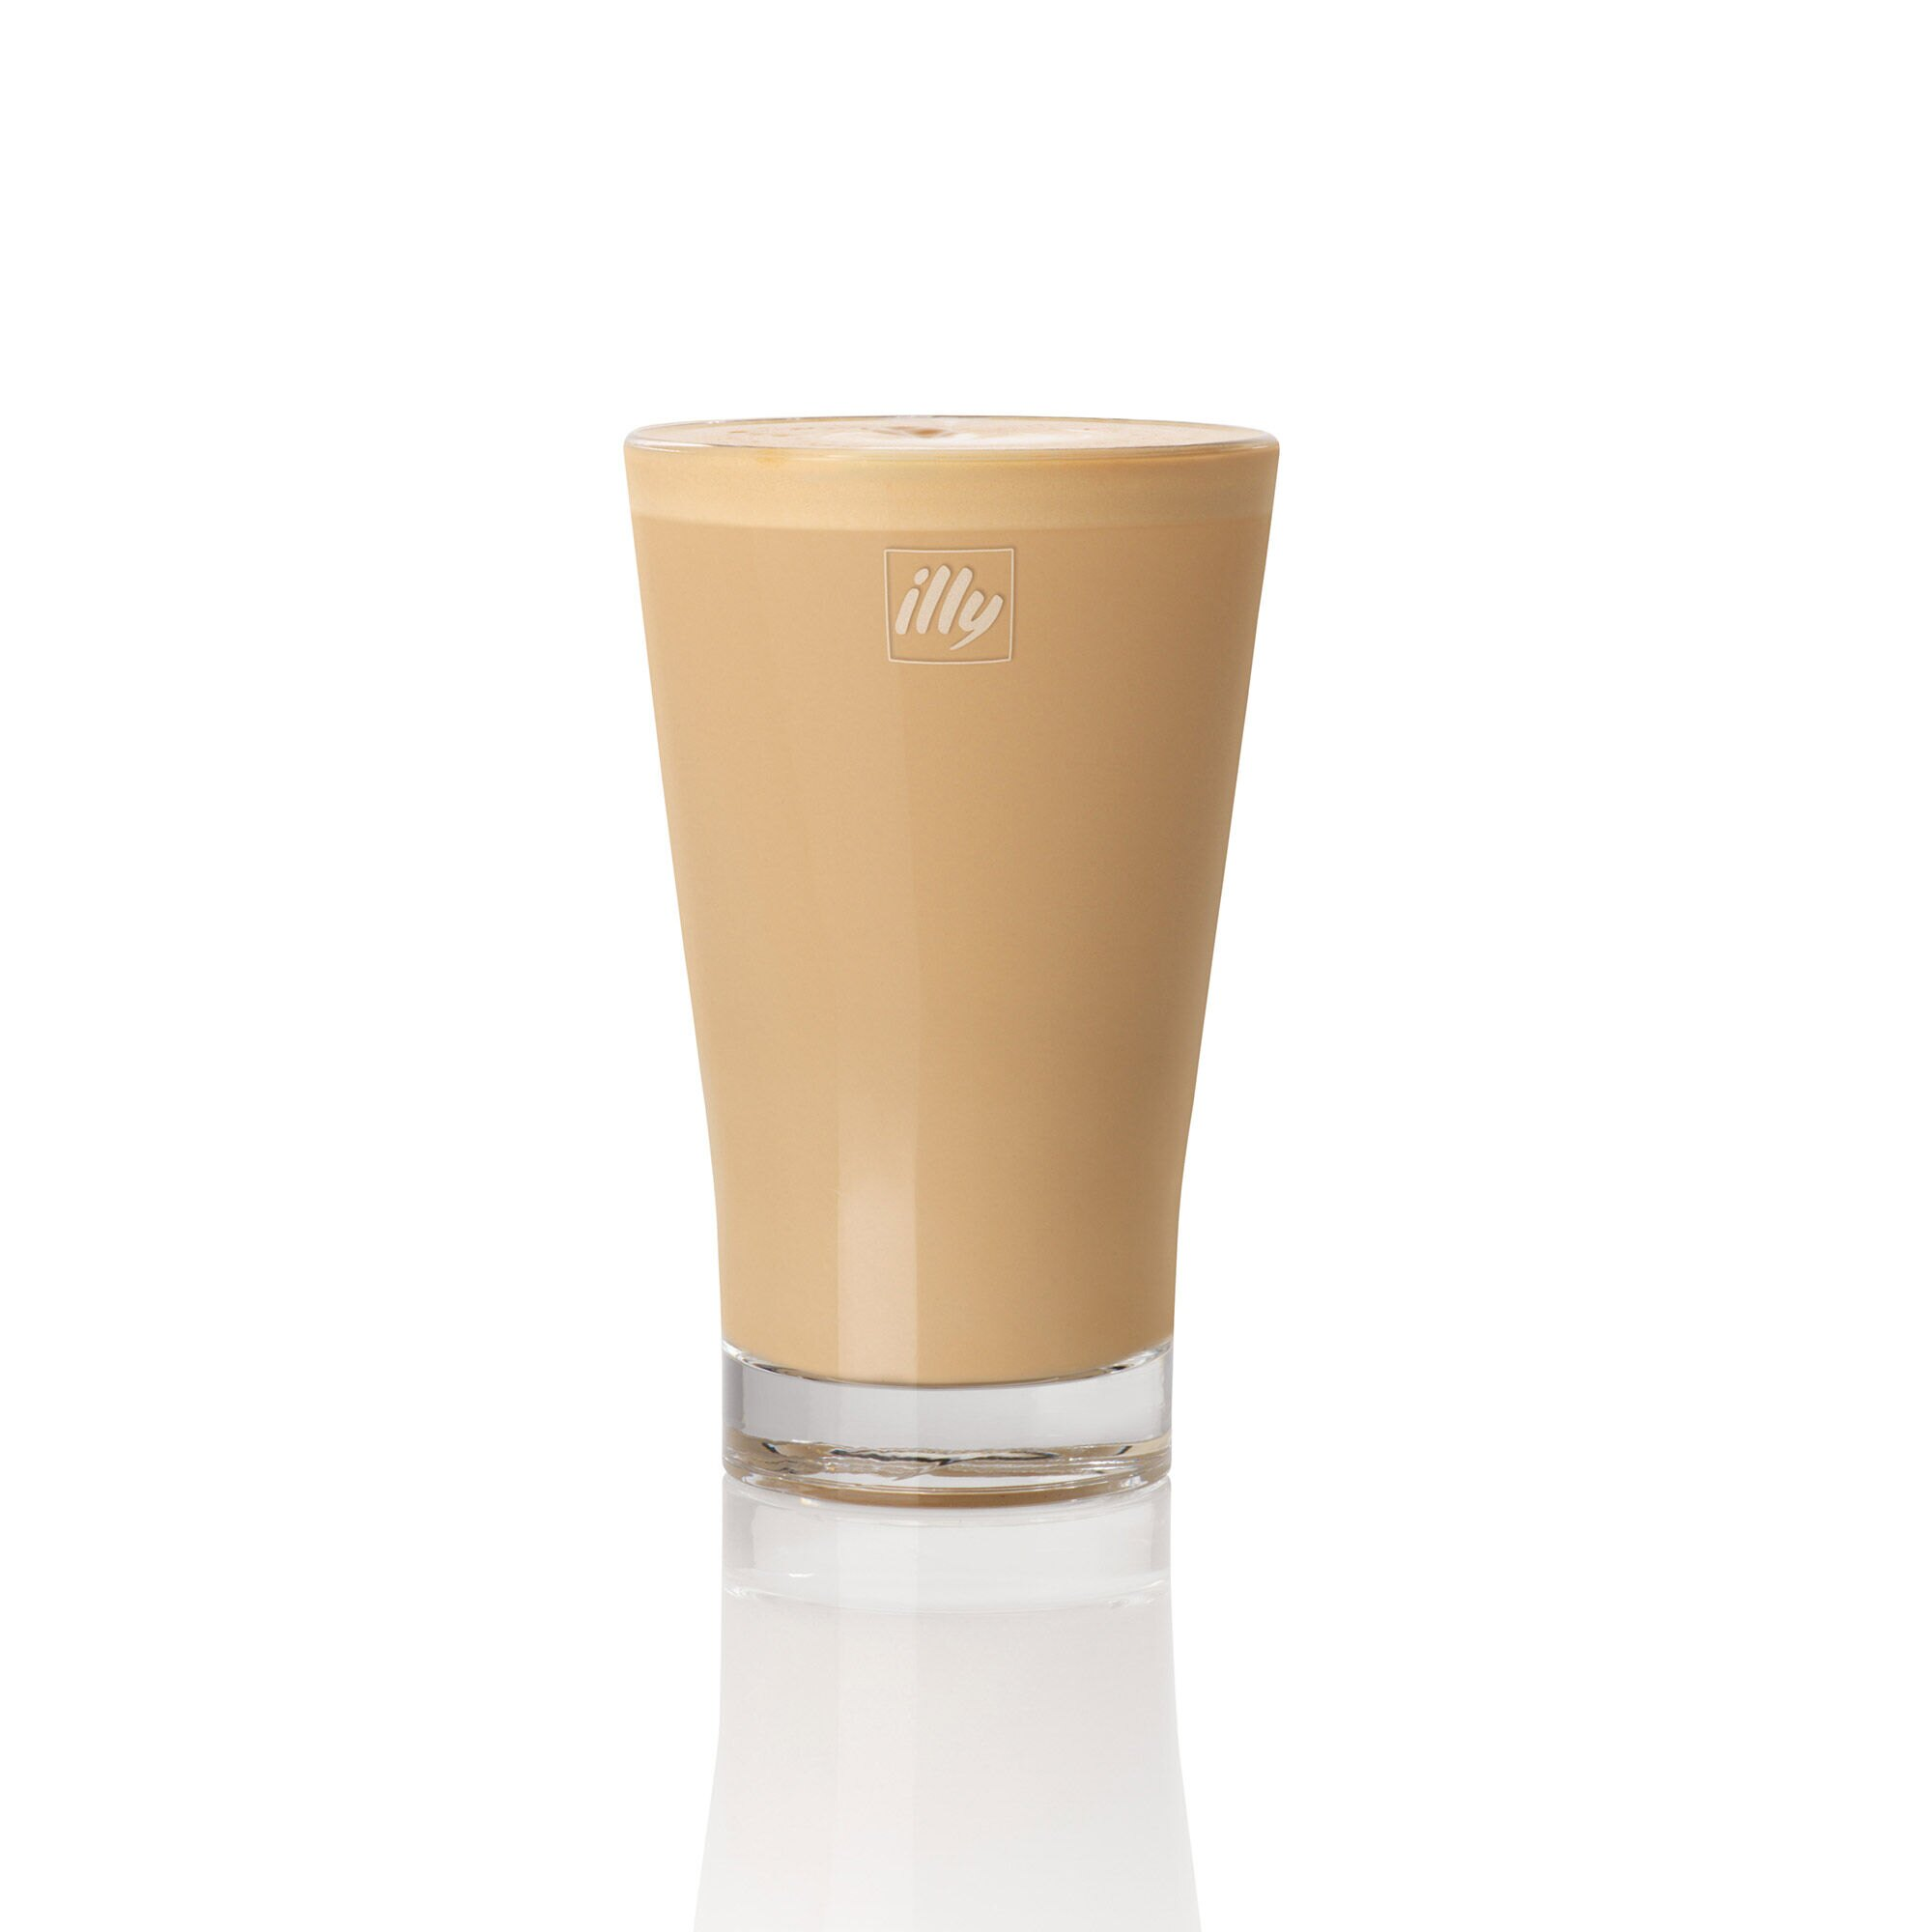 illy Latte Glasses - Set of 6